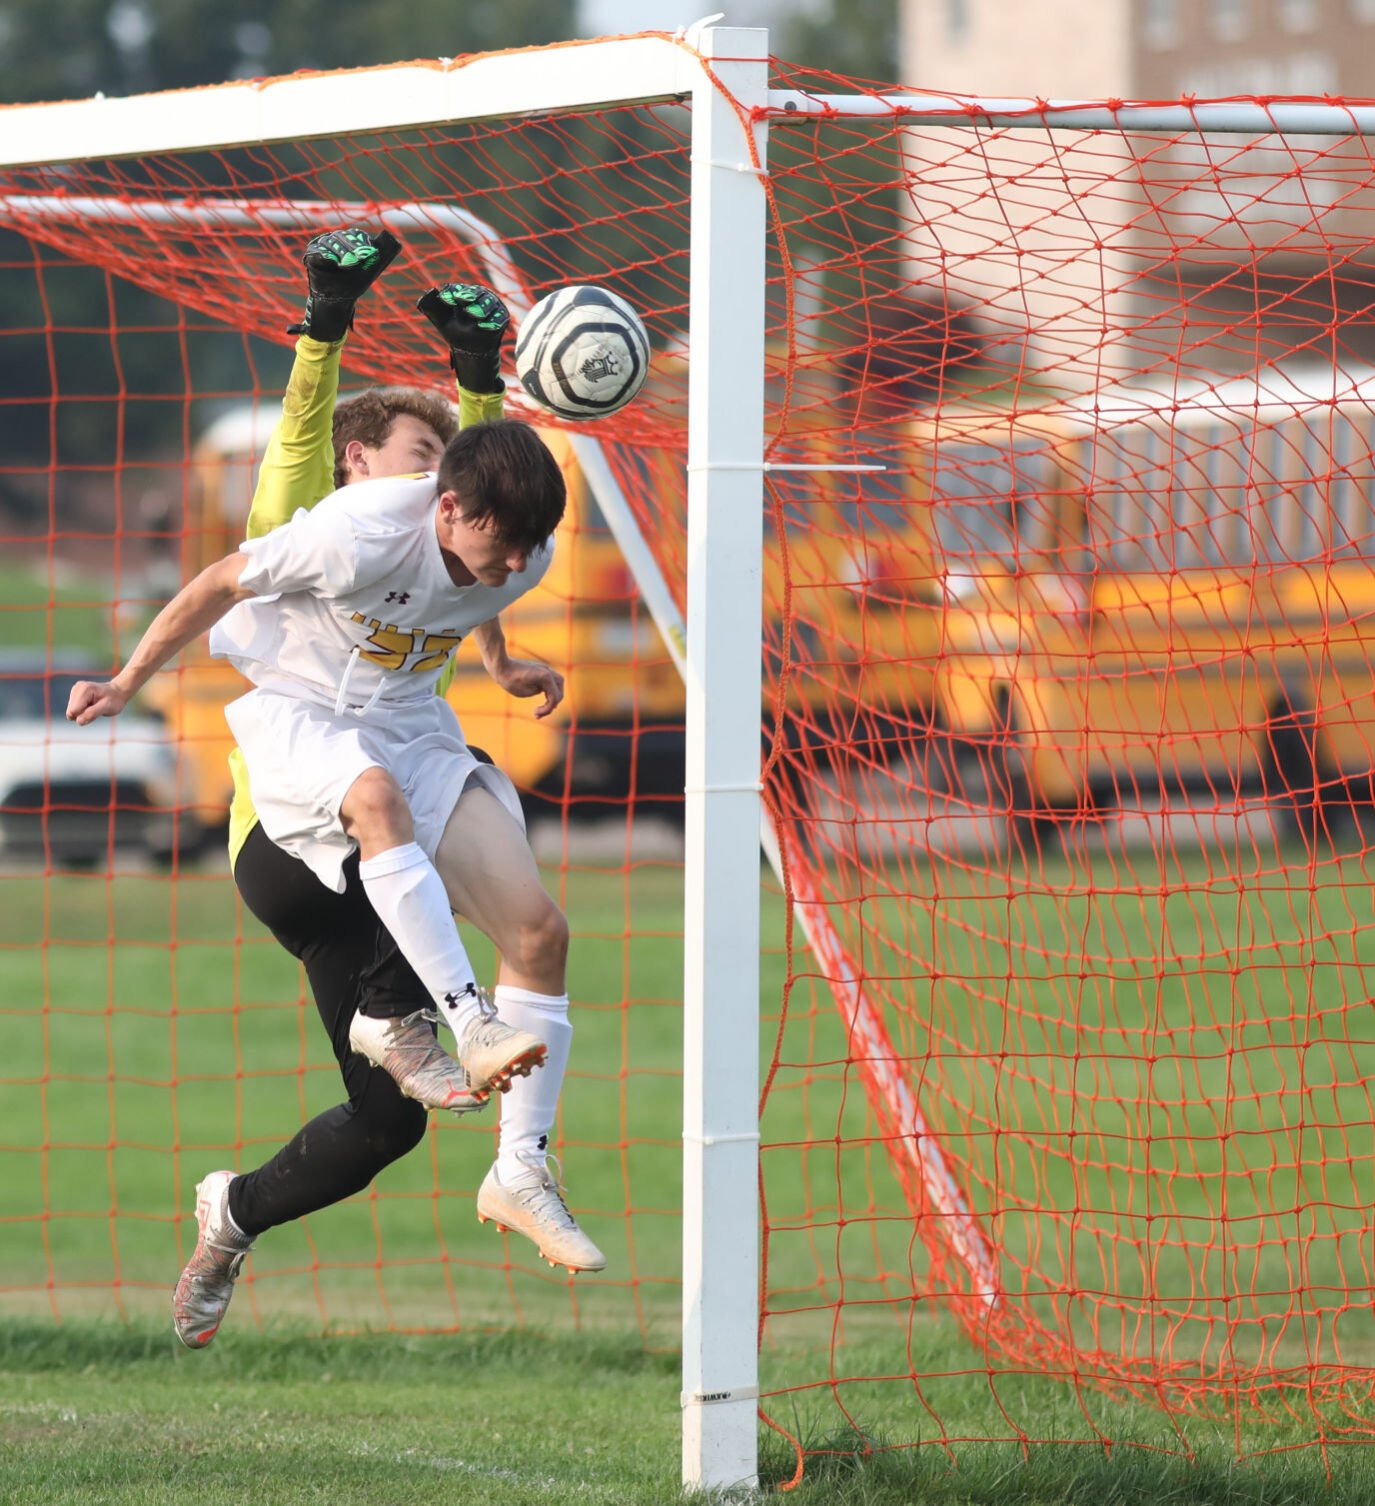 LOCAL ROUNDUP: Cougars rally past Valley West